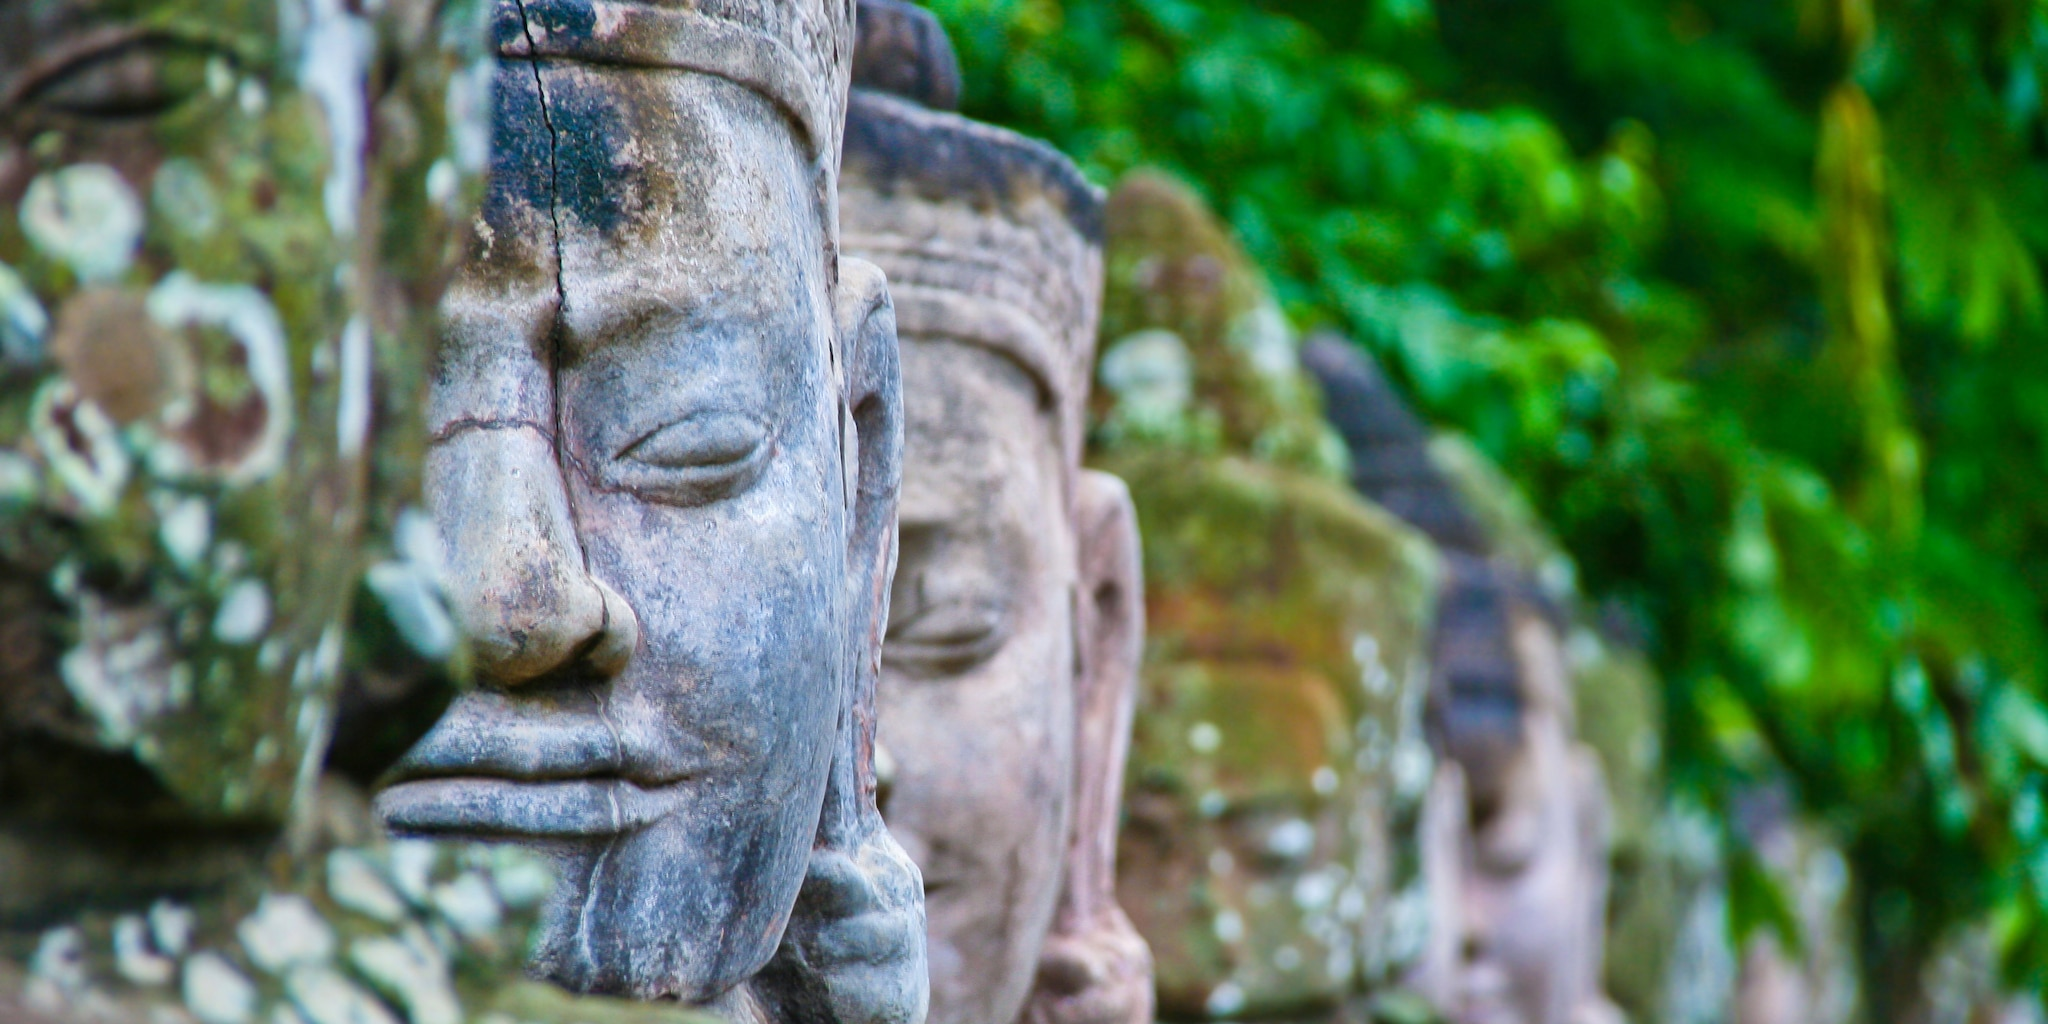 The statues of Angkor Wat in Vietnam